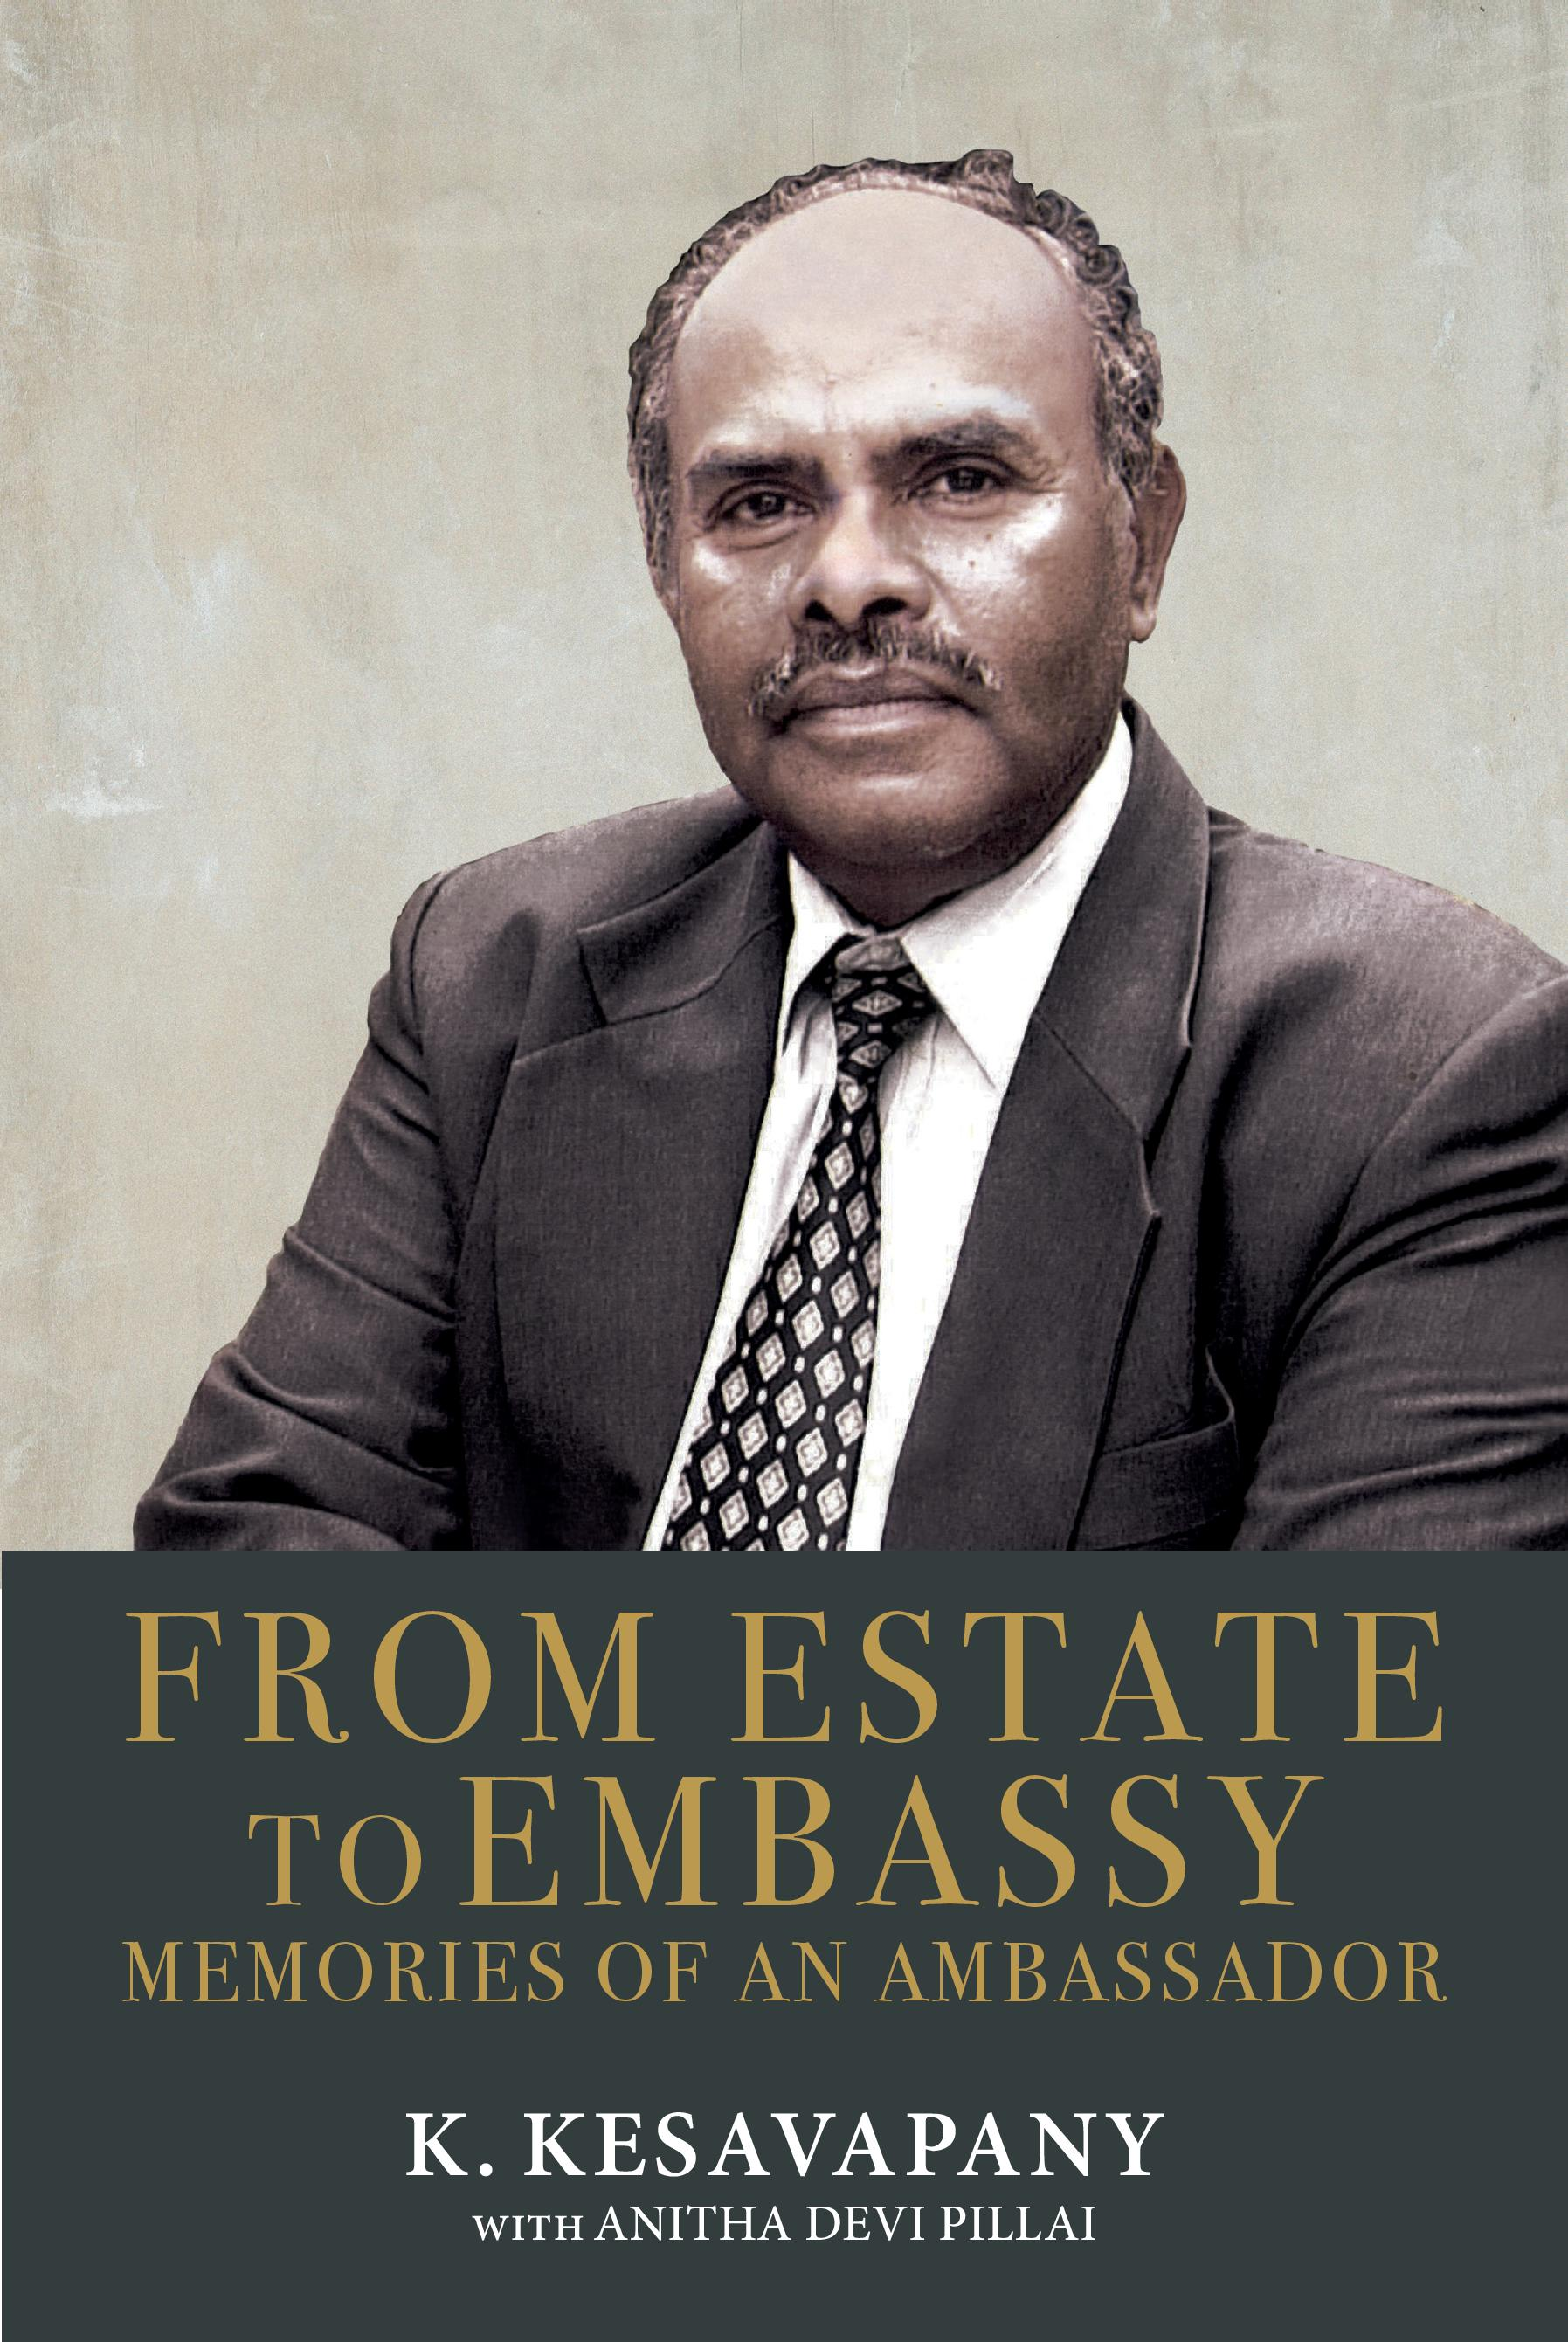 From Estate to Embassy: Memories of an Ambassador